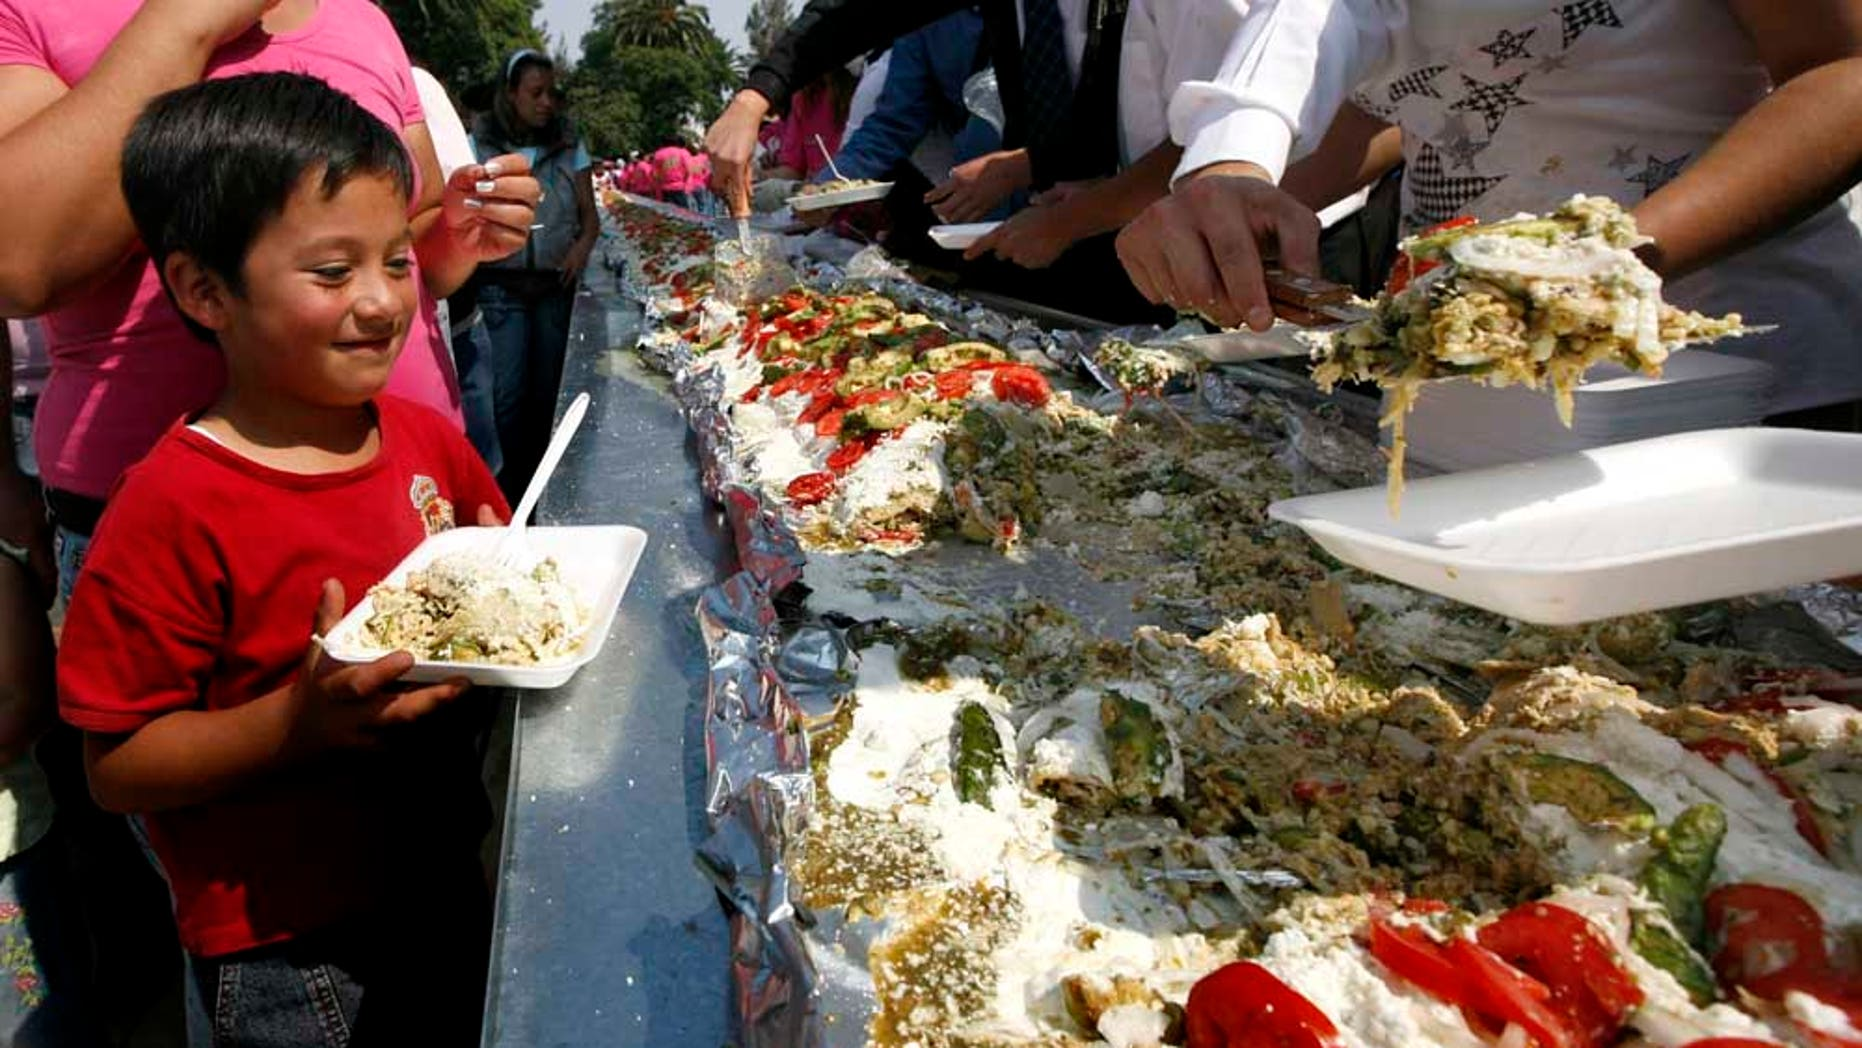 A boy waits to be served a portion of the world's largest 'Enchilada', a traditional Mexican food, during the National Enchilada Fair at the neighborhood of Iztapalapa in Mexico City, Sunday, Oct. 17, 2010. The enchilada, measuring 70 meters long and 1,416 kgs, entered the famous Guinness Record book Sunday. (AP Photo/Marco Ugarte)